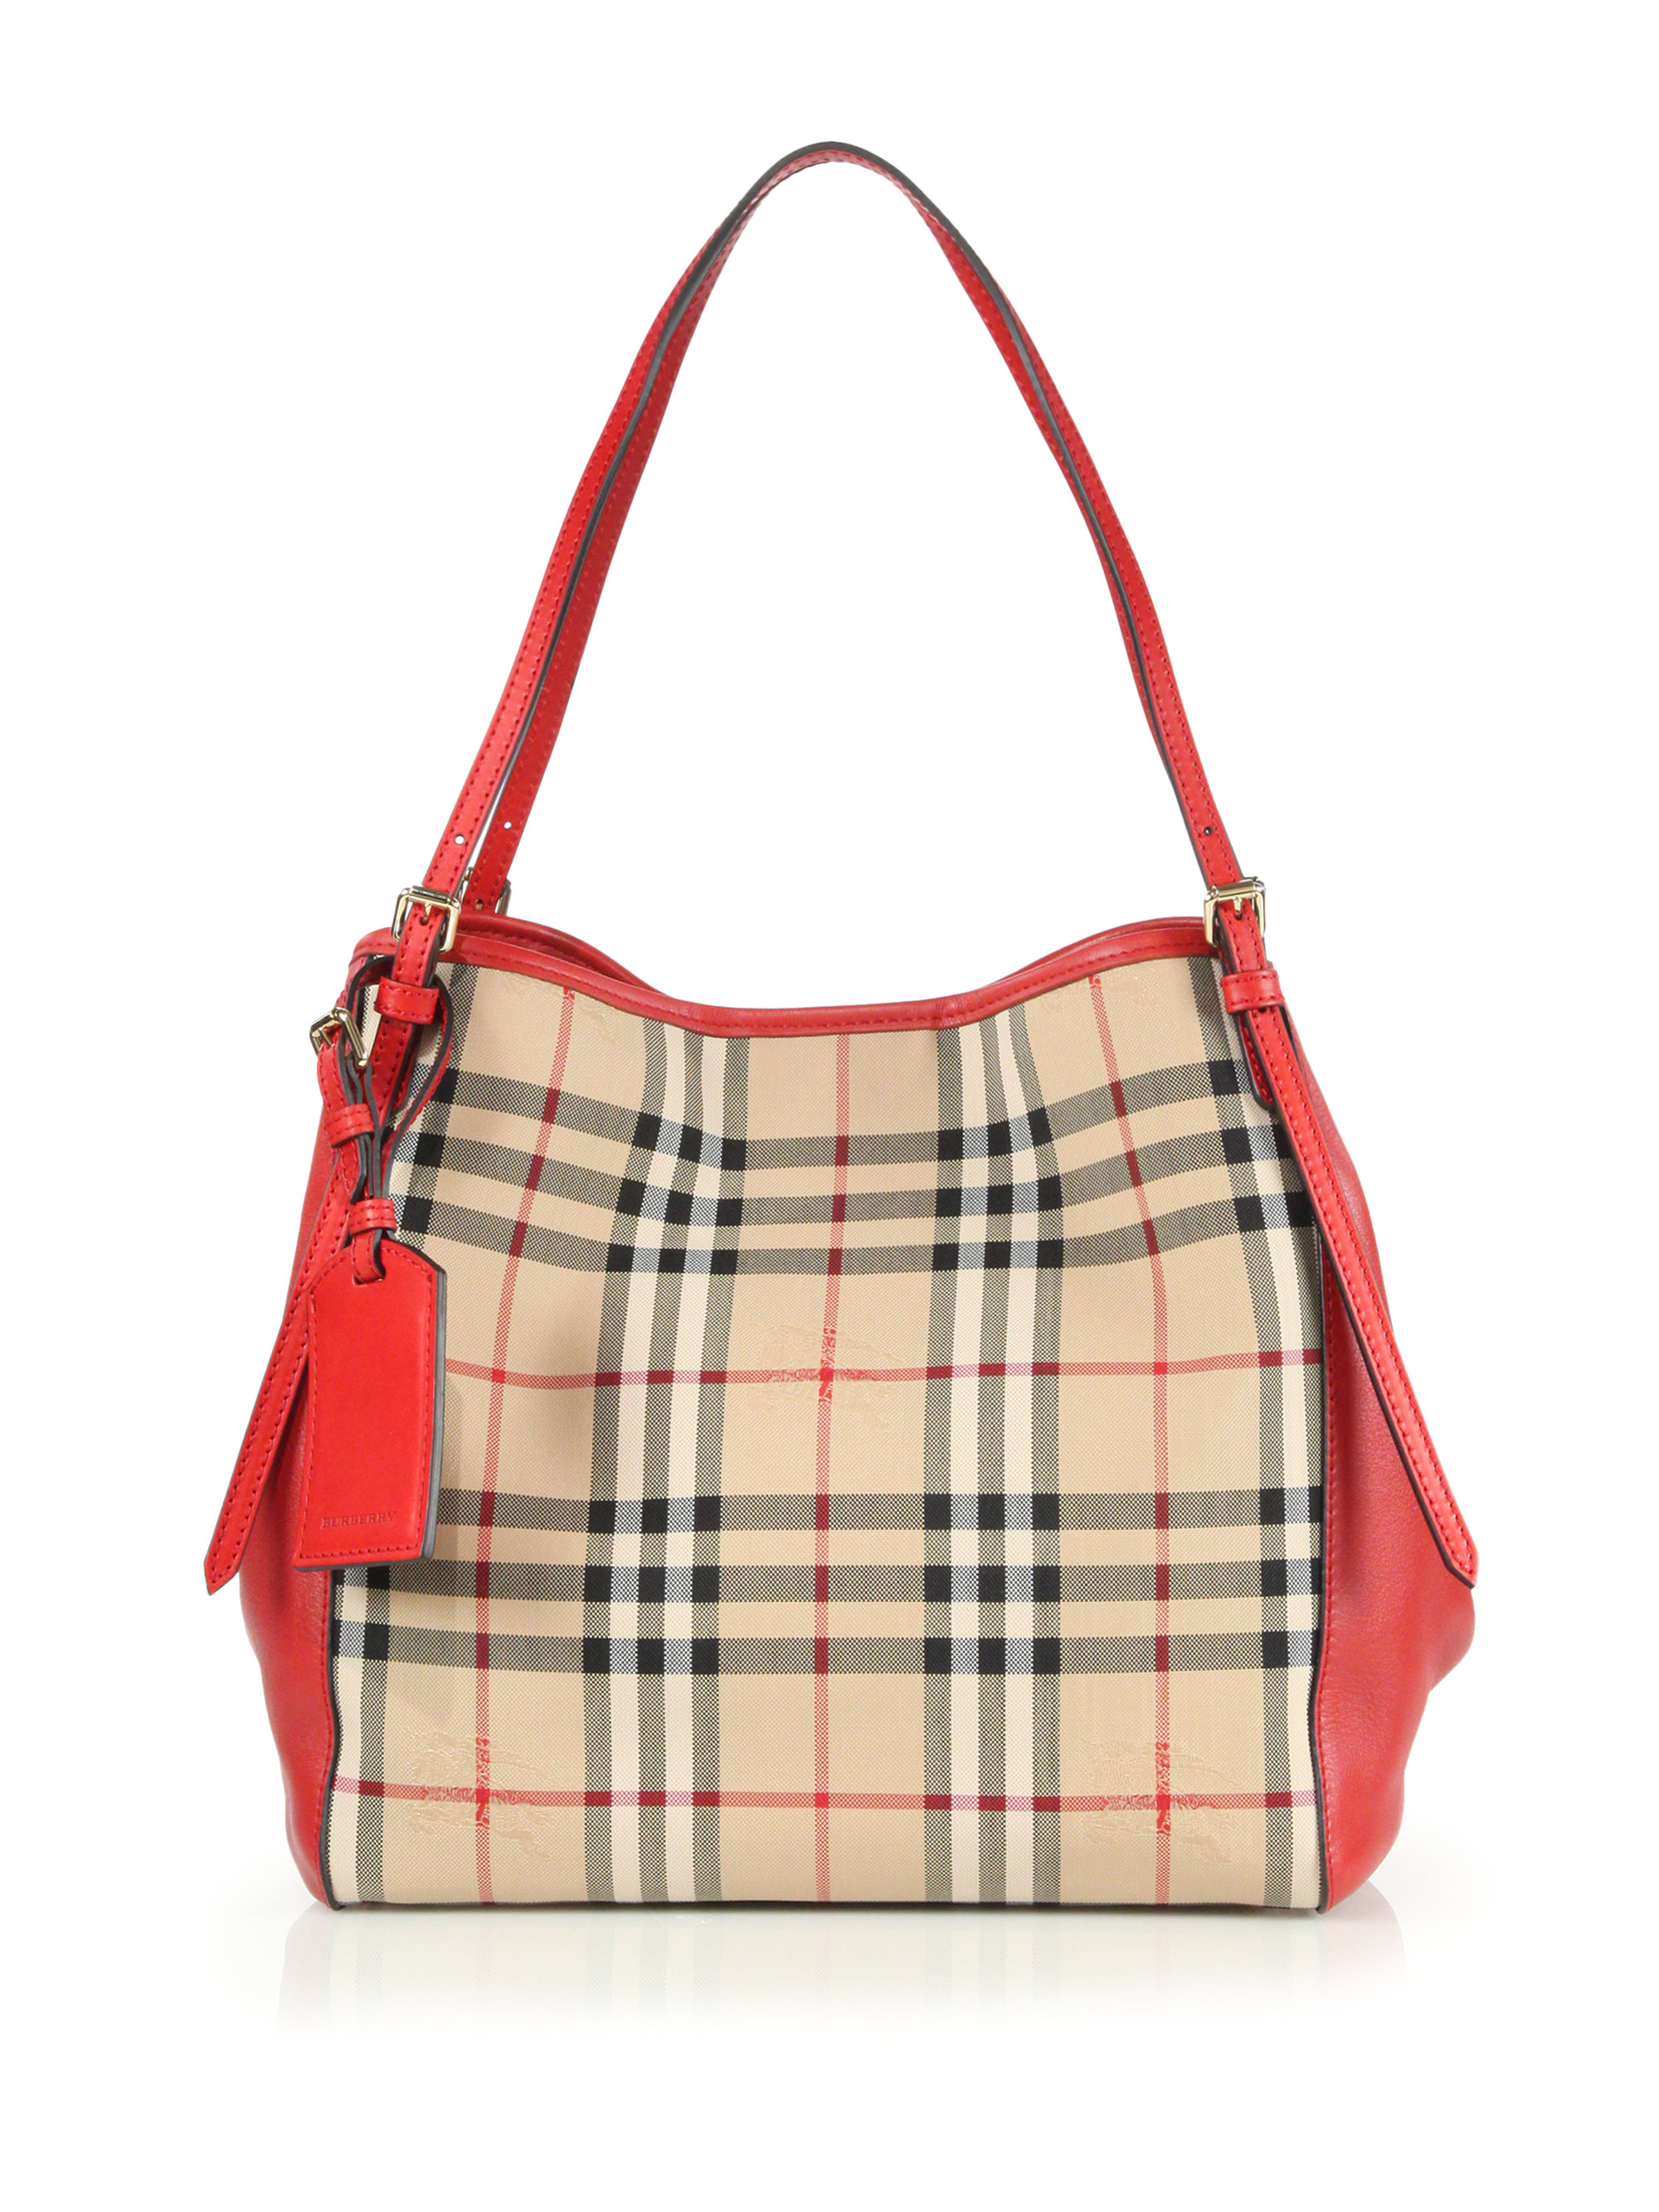 Lyst - Burberry Canter Small Horseferry Check Tote in Red 64fabf9337ac9